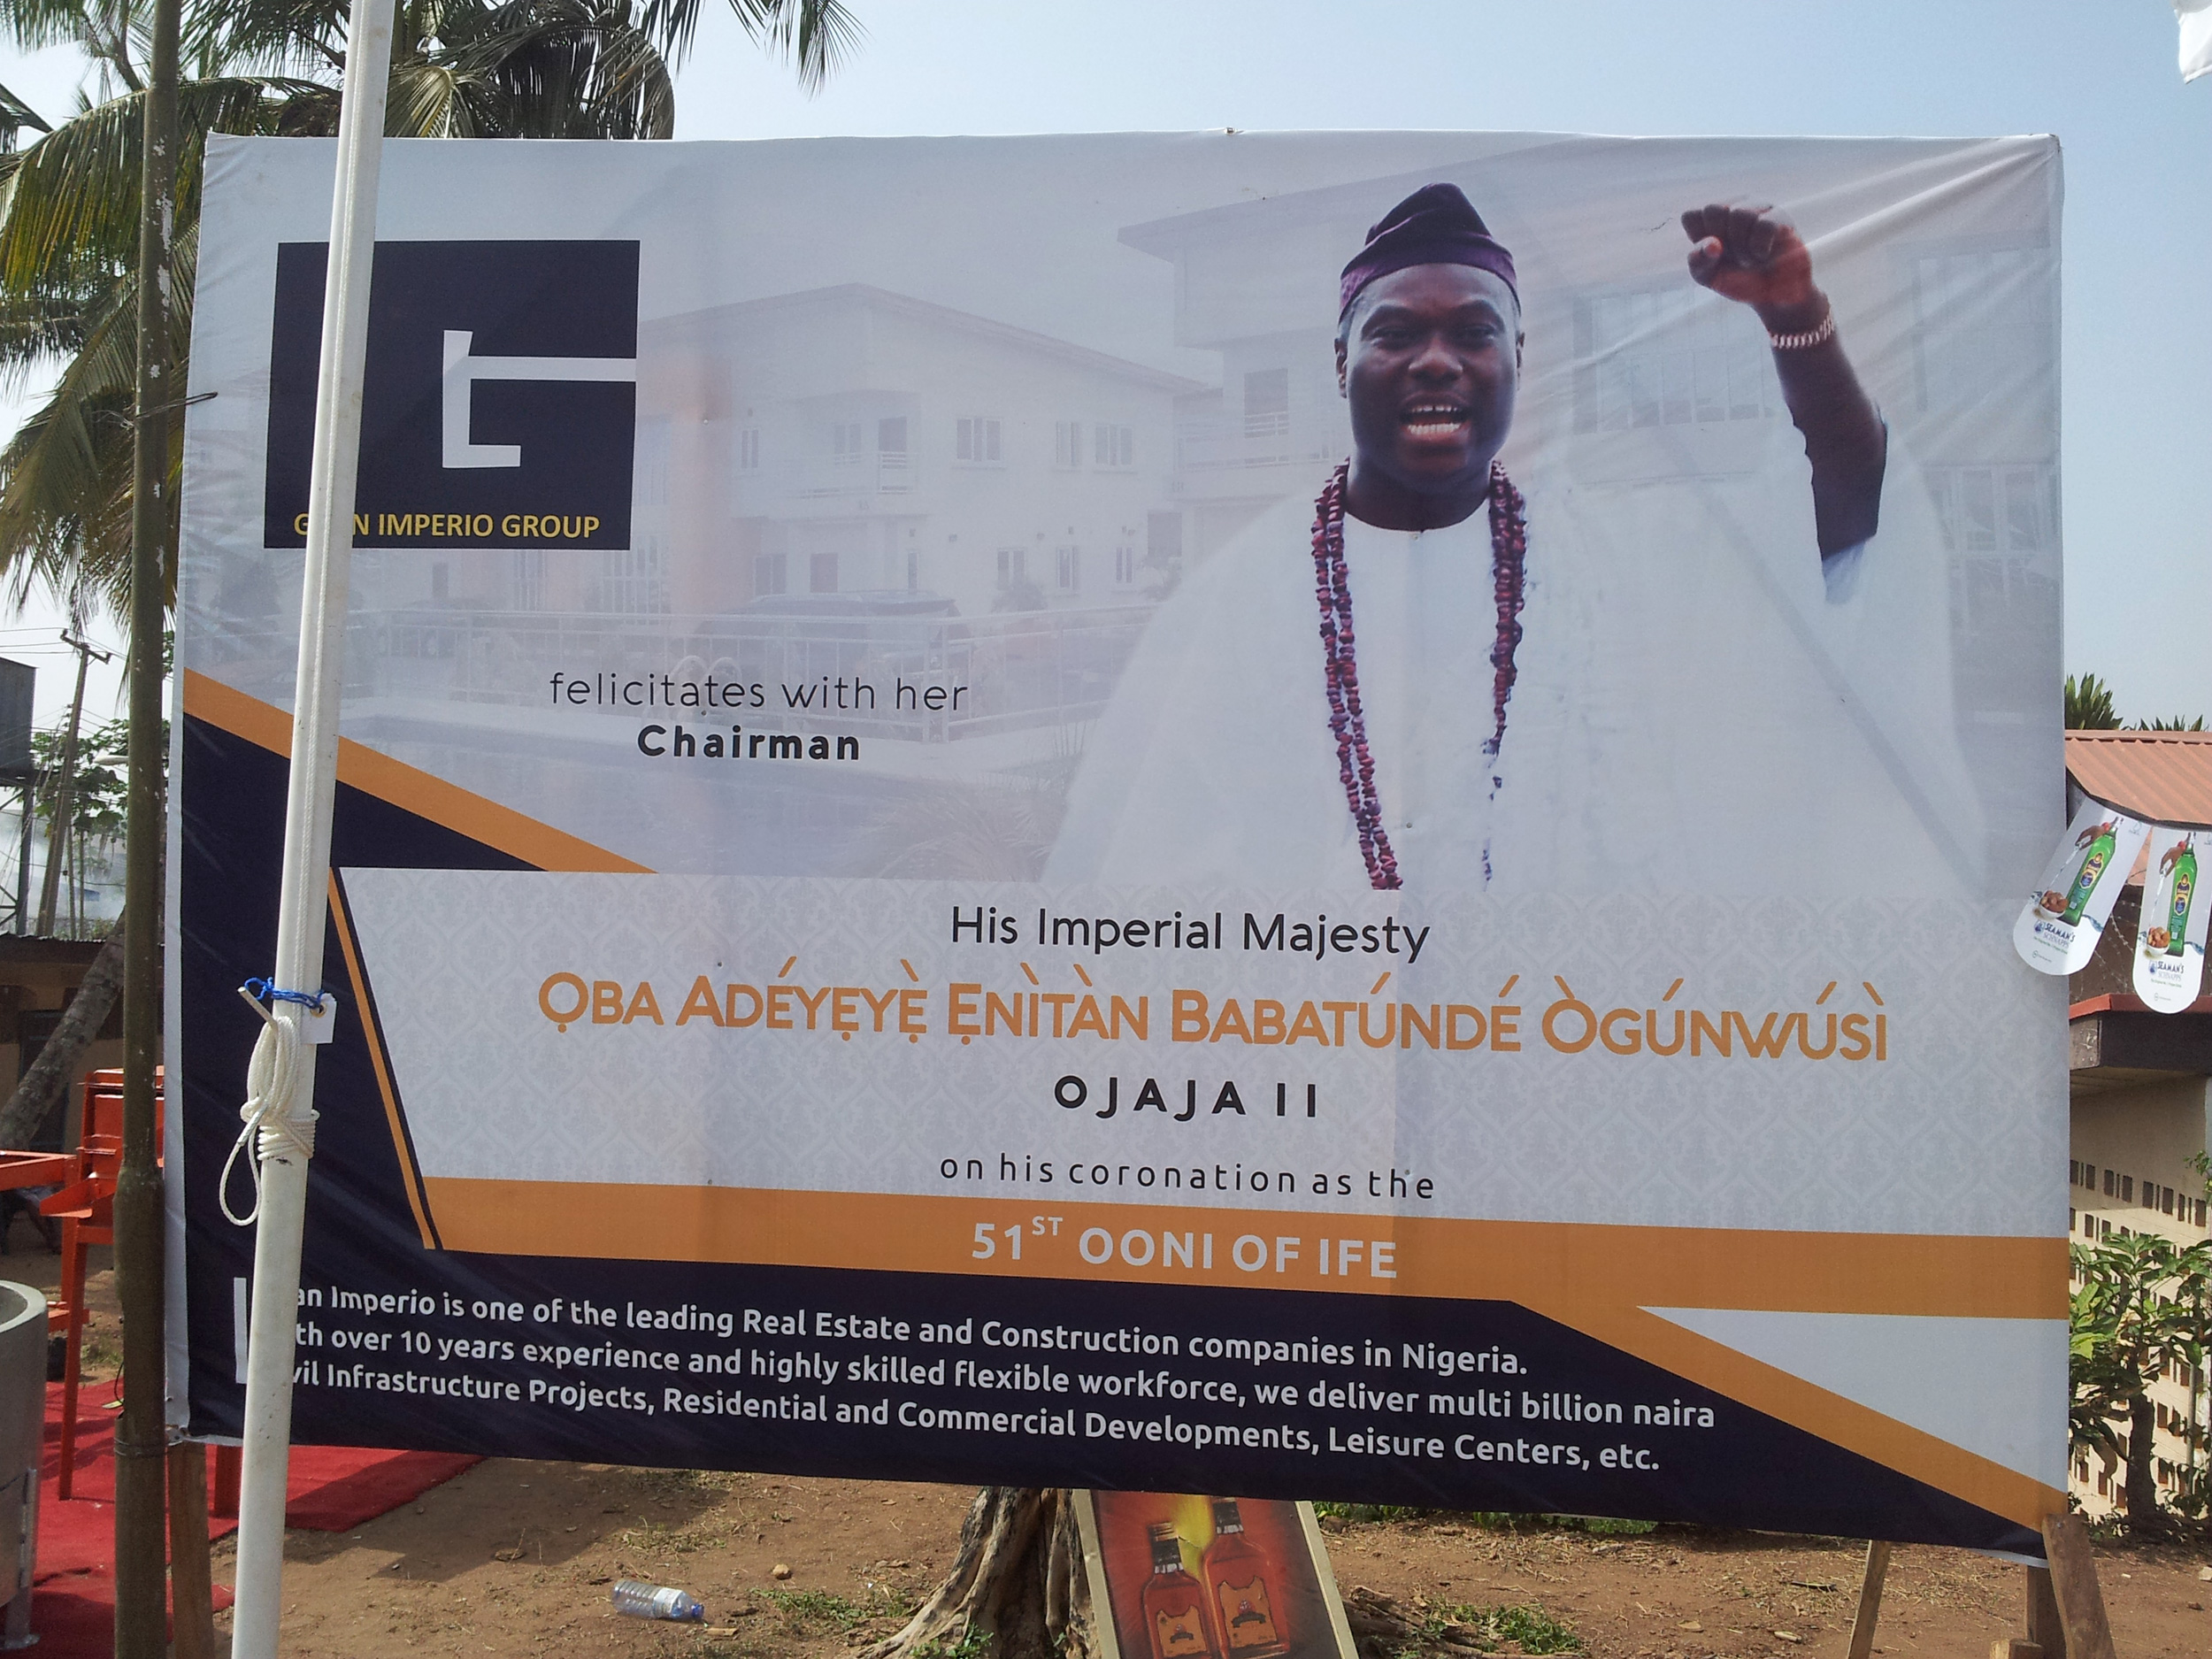 One of the posters sponsored by a Nigerian real estate company to celebrate the new Yorùbá king. Day of the public coronation, 2015, Ilé-Ifẹ̀. ©orishaimage.com